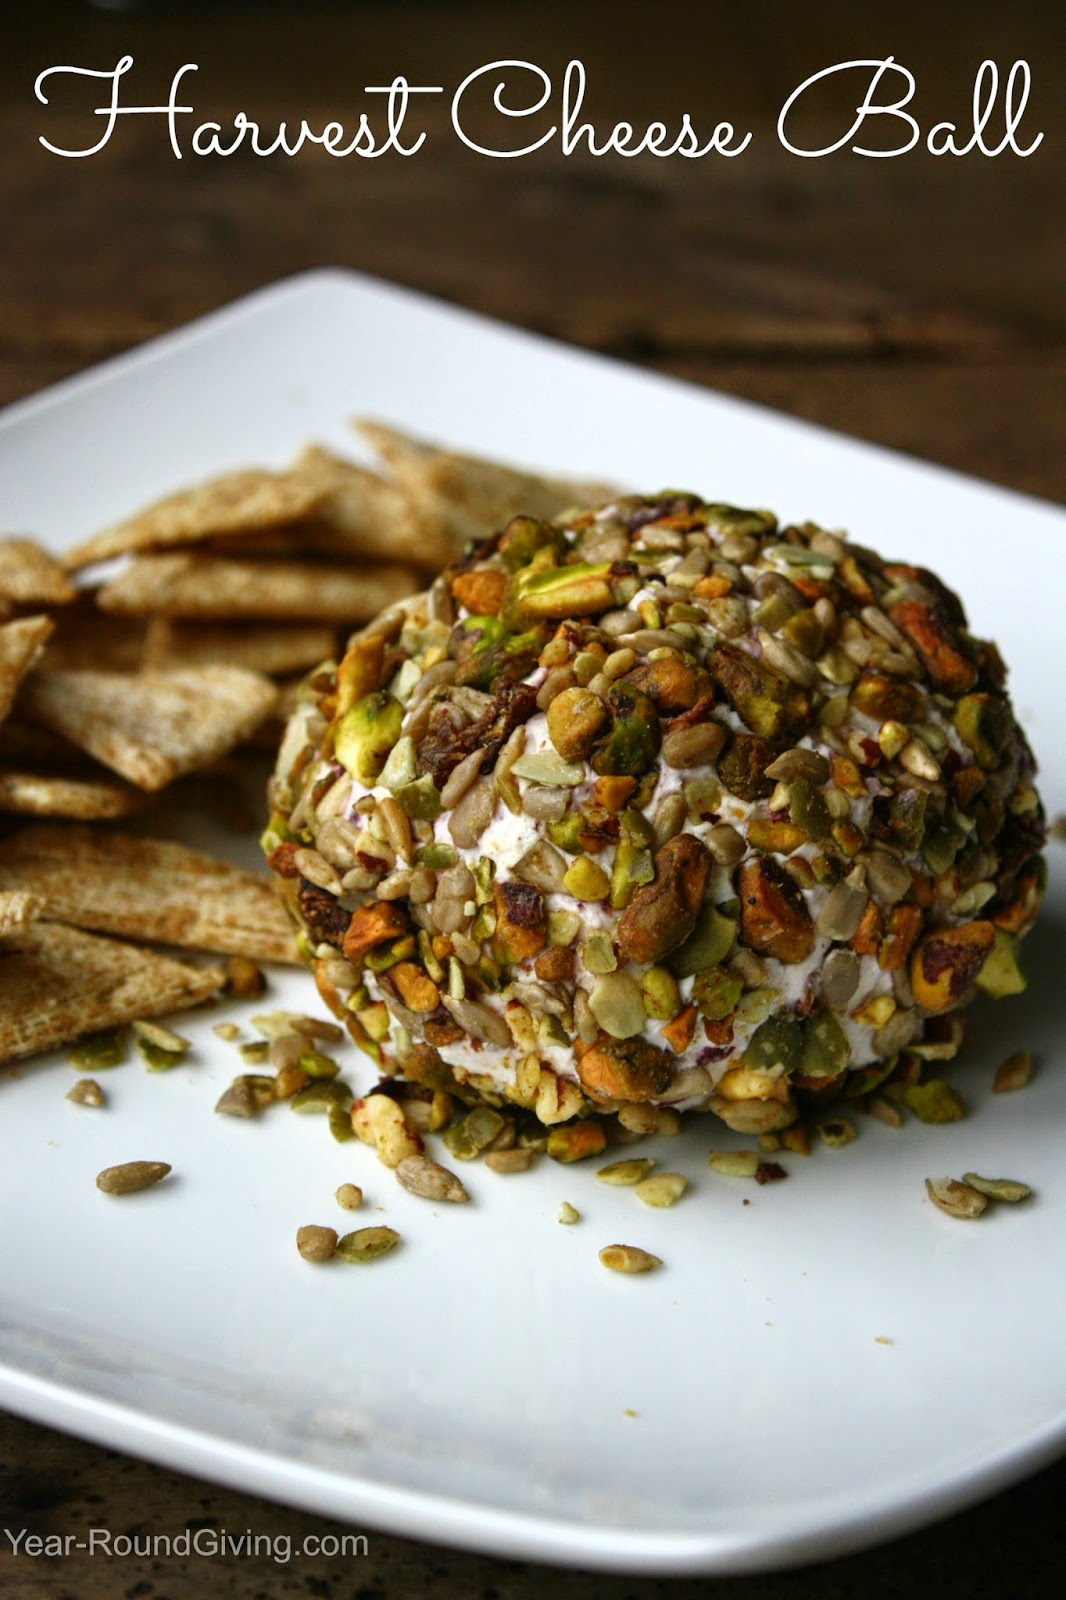 Harvest Cheese Ball - made with goat cheese and craisins inside.